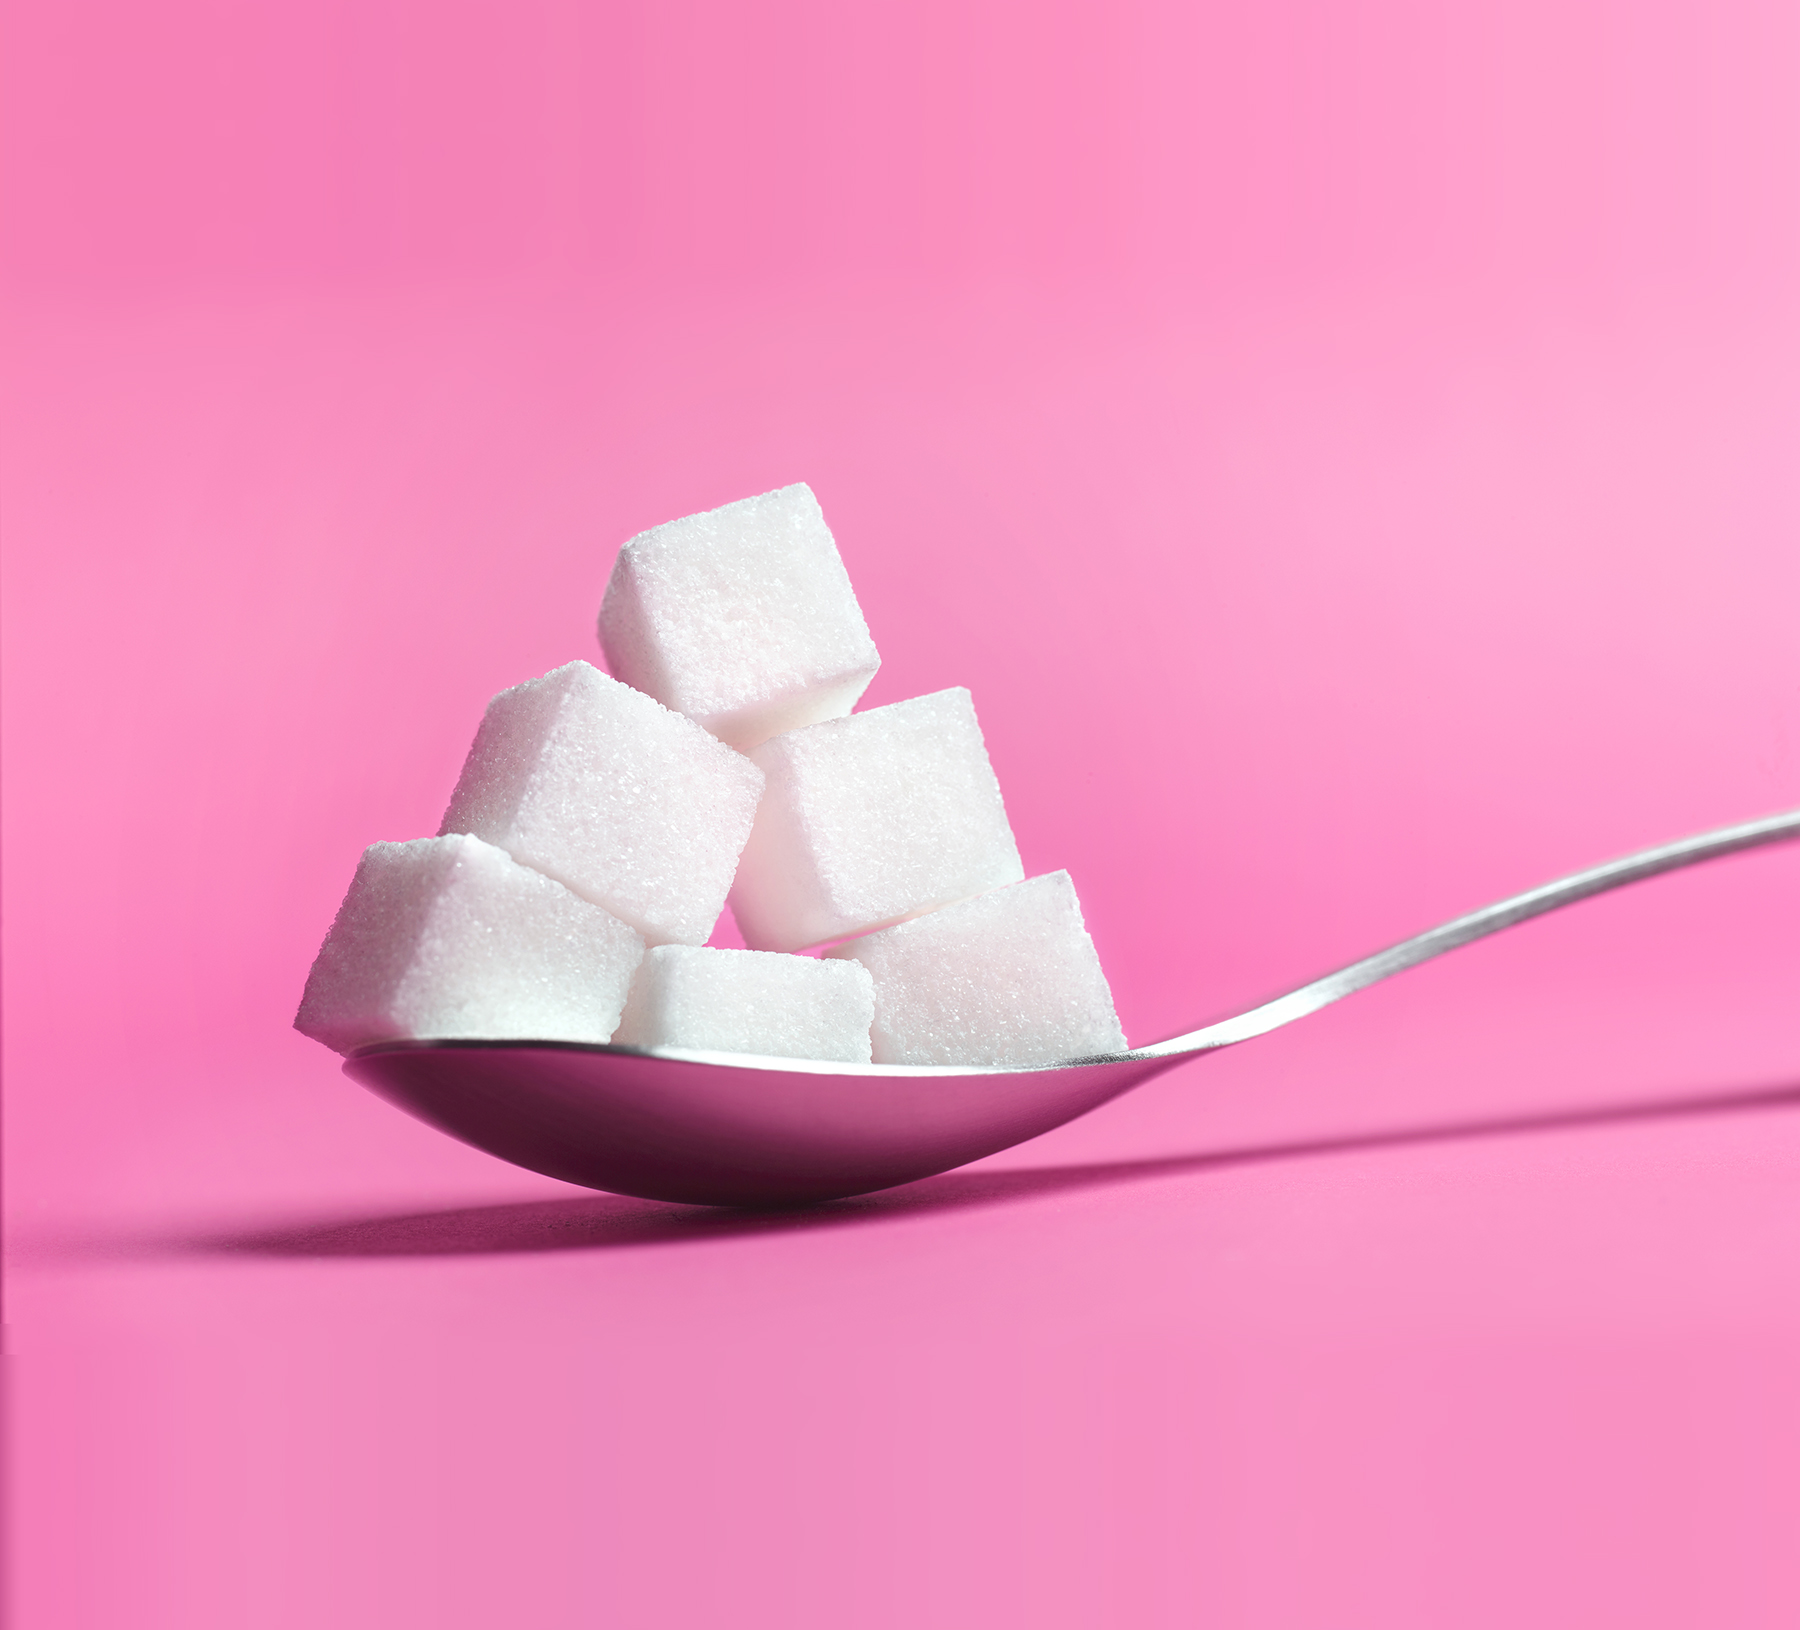 Spoonful of sugar cubes on pink background